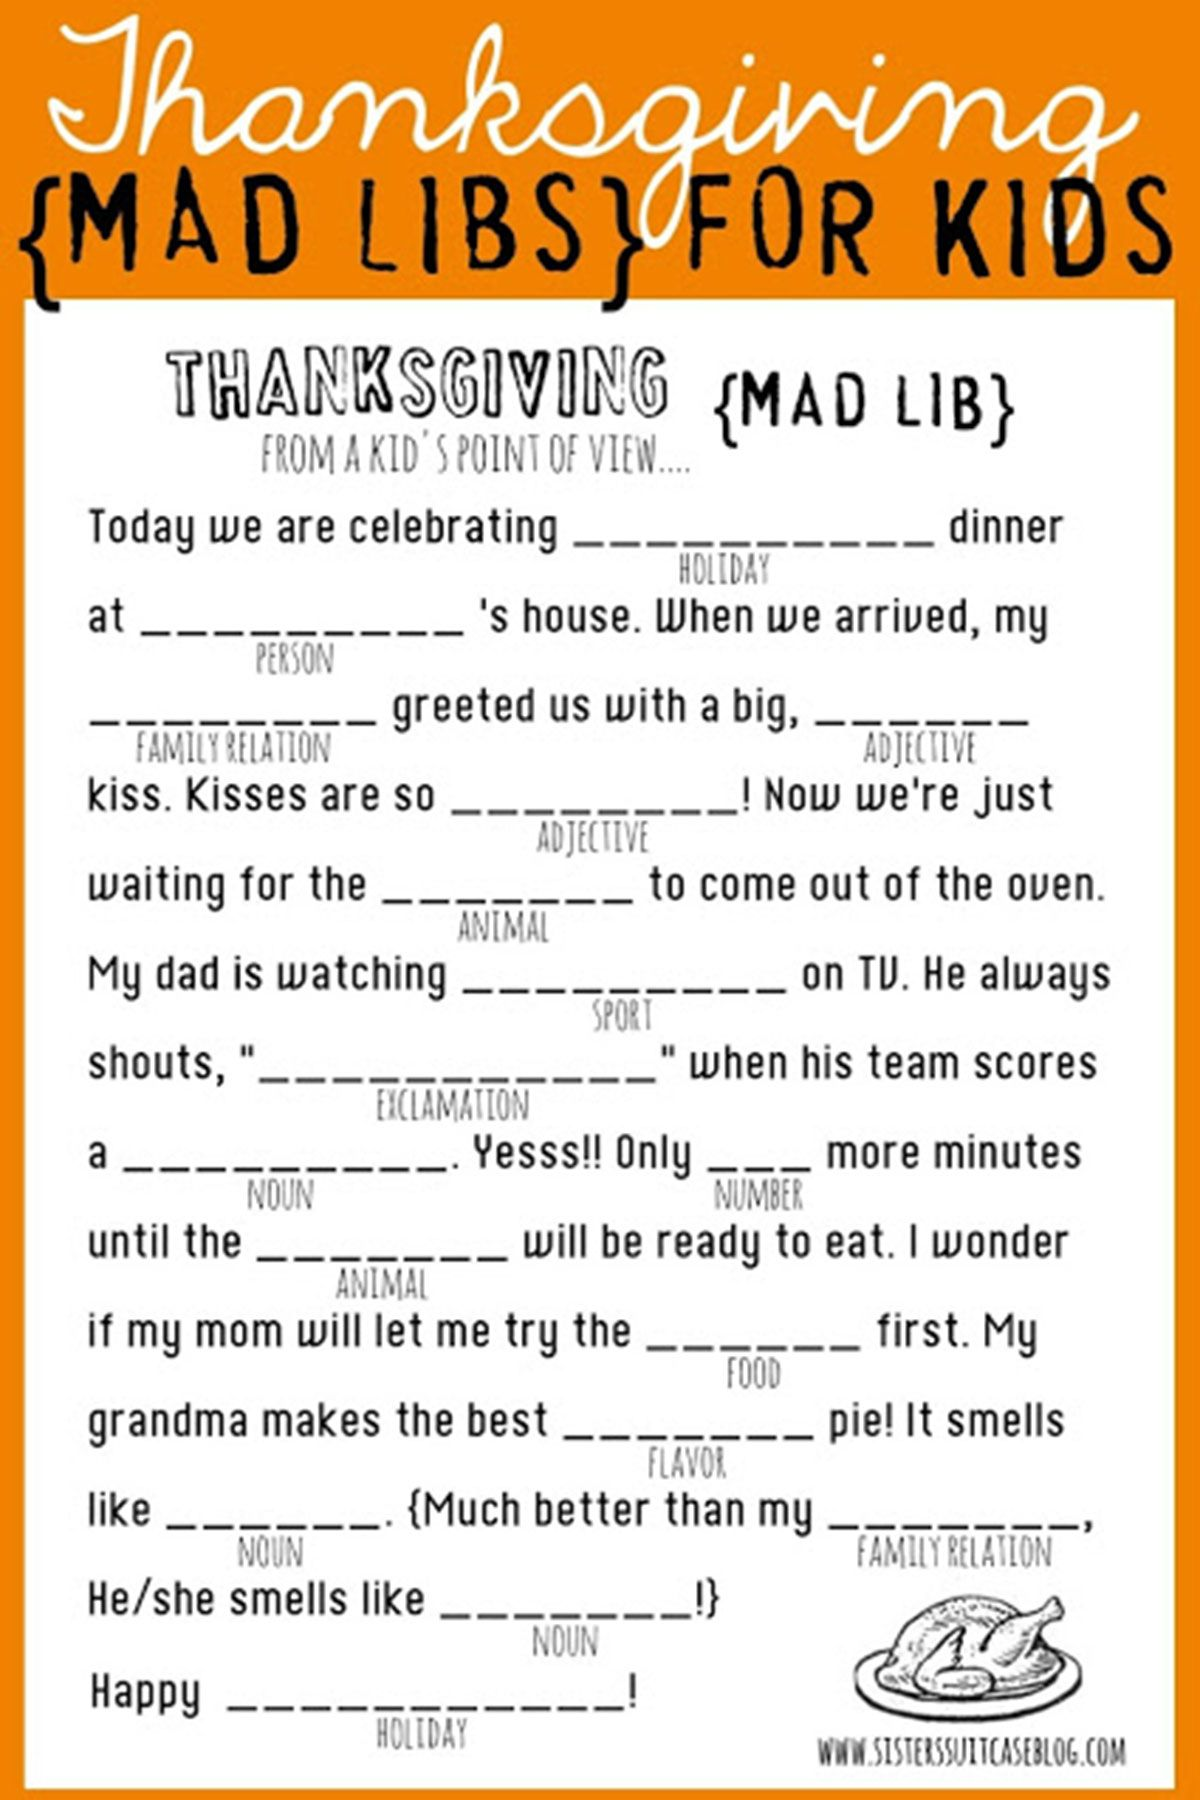 Massif Camping Mad Libs Printable